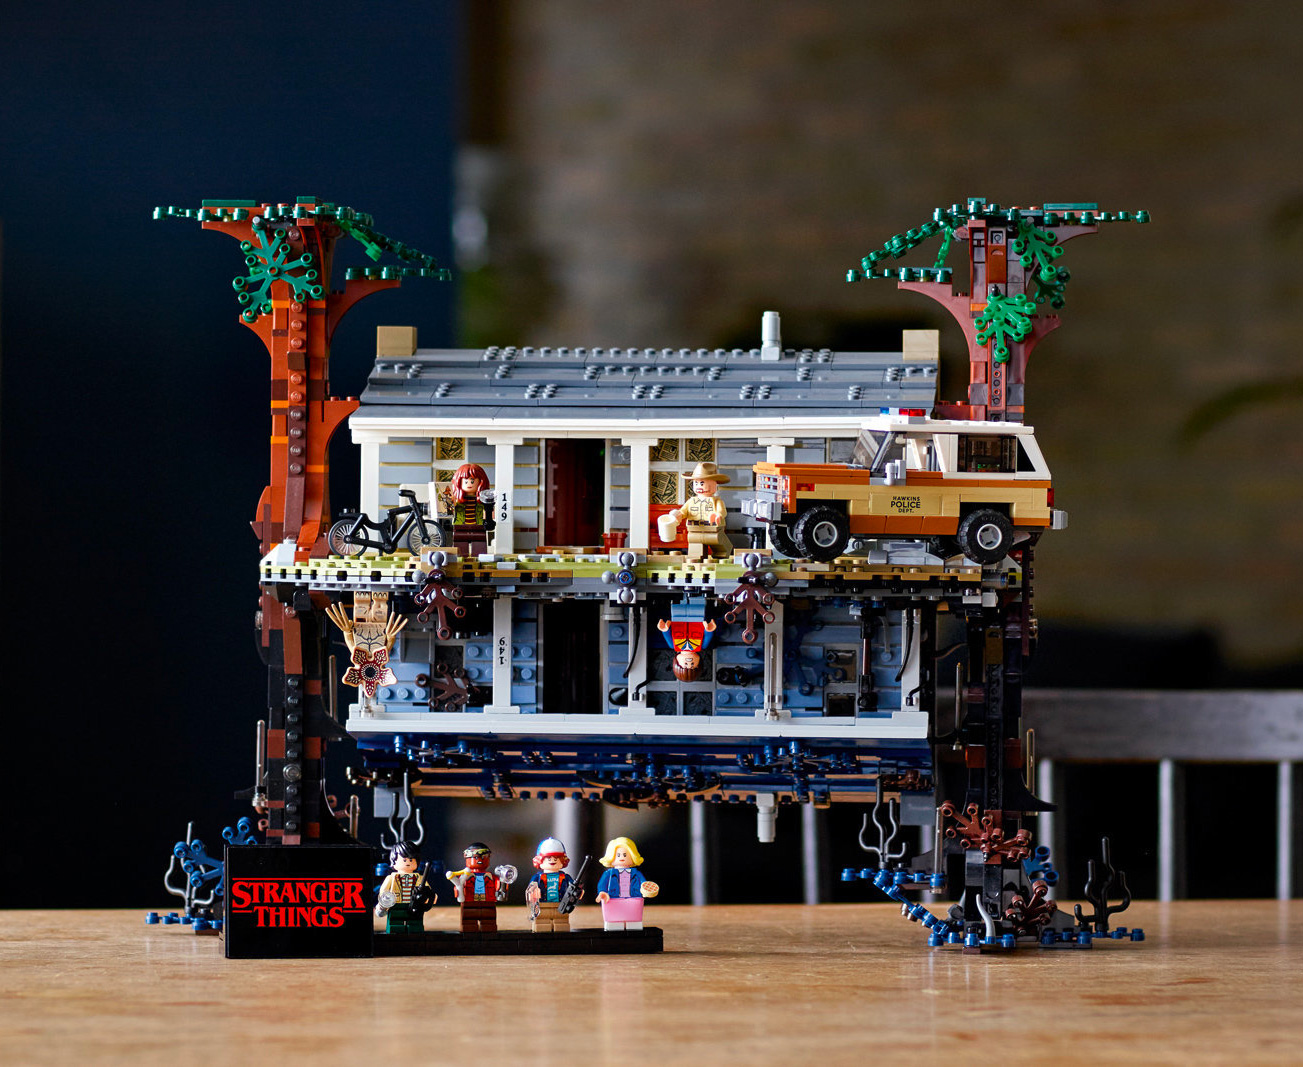 Build Your Own Upside Down With Legos' <i>Stranger Things</i> Set at werd.com